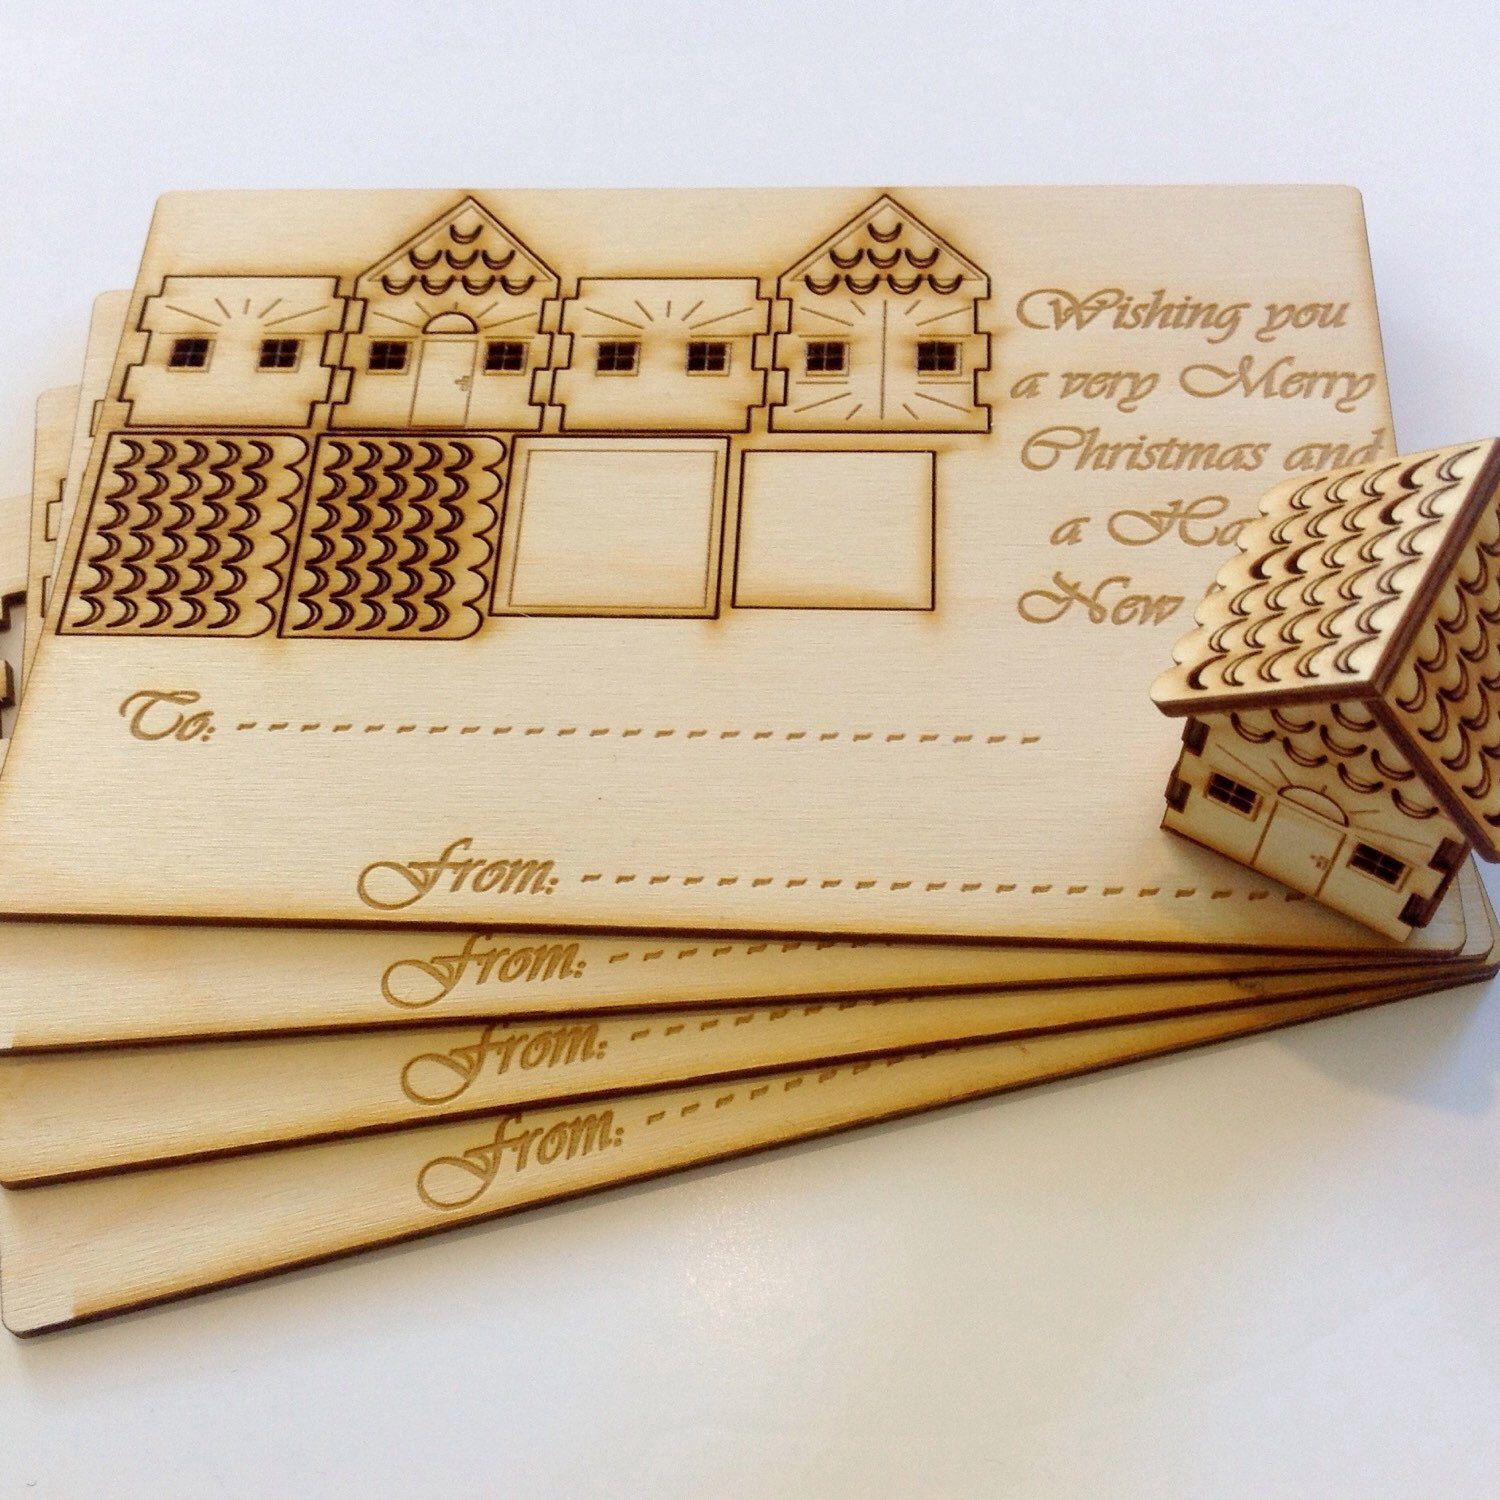 Cleaver wooden Christmas cards | Christmas laser | Laser cutting, Laser cut wood, Christmas